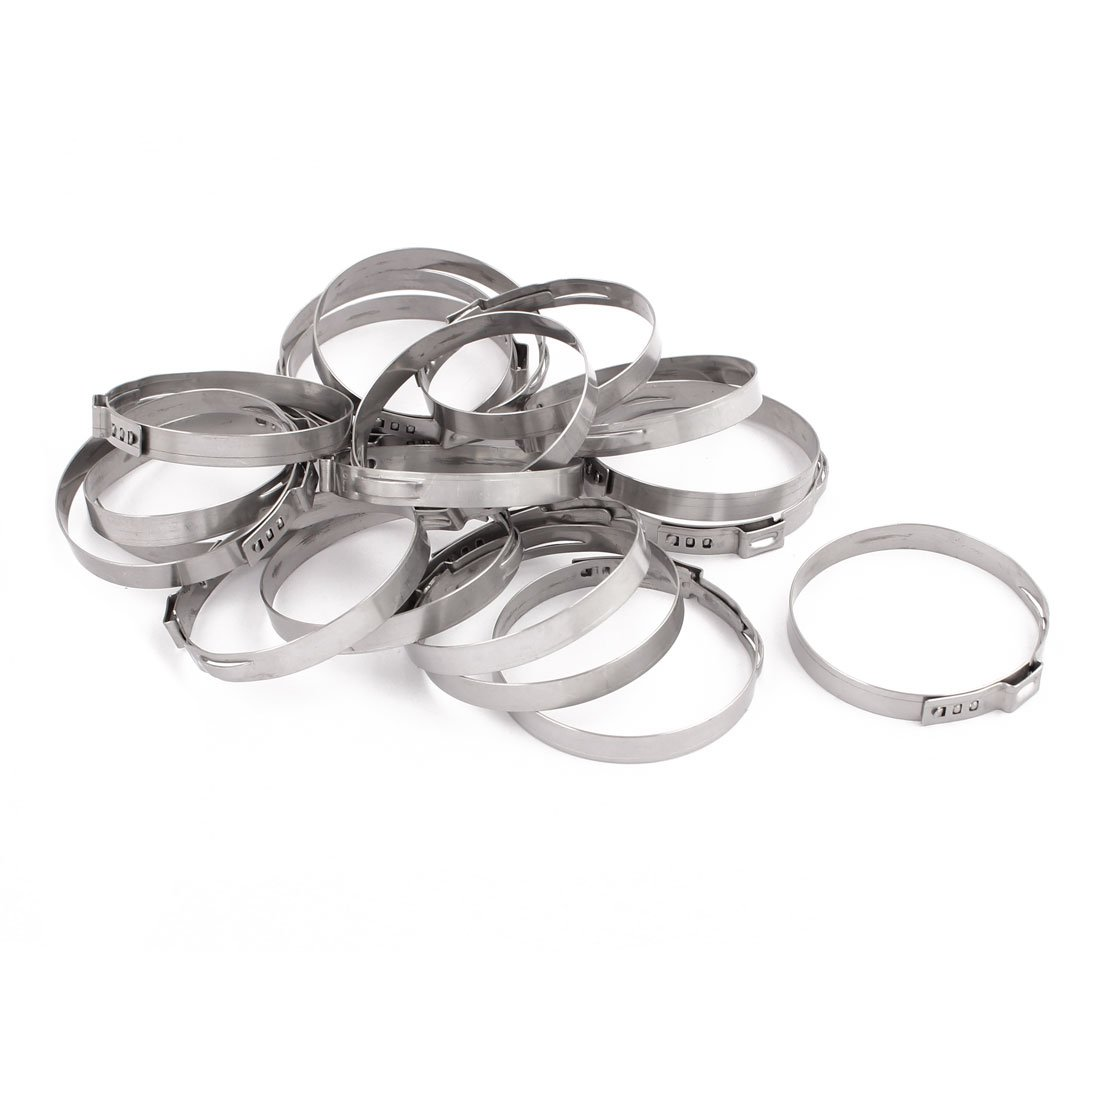 uxcell 48.8mm-52mm 304 Stainless Steel Adjustable Tube Hose Clamps Silver Tone 20pcs